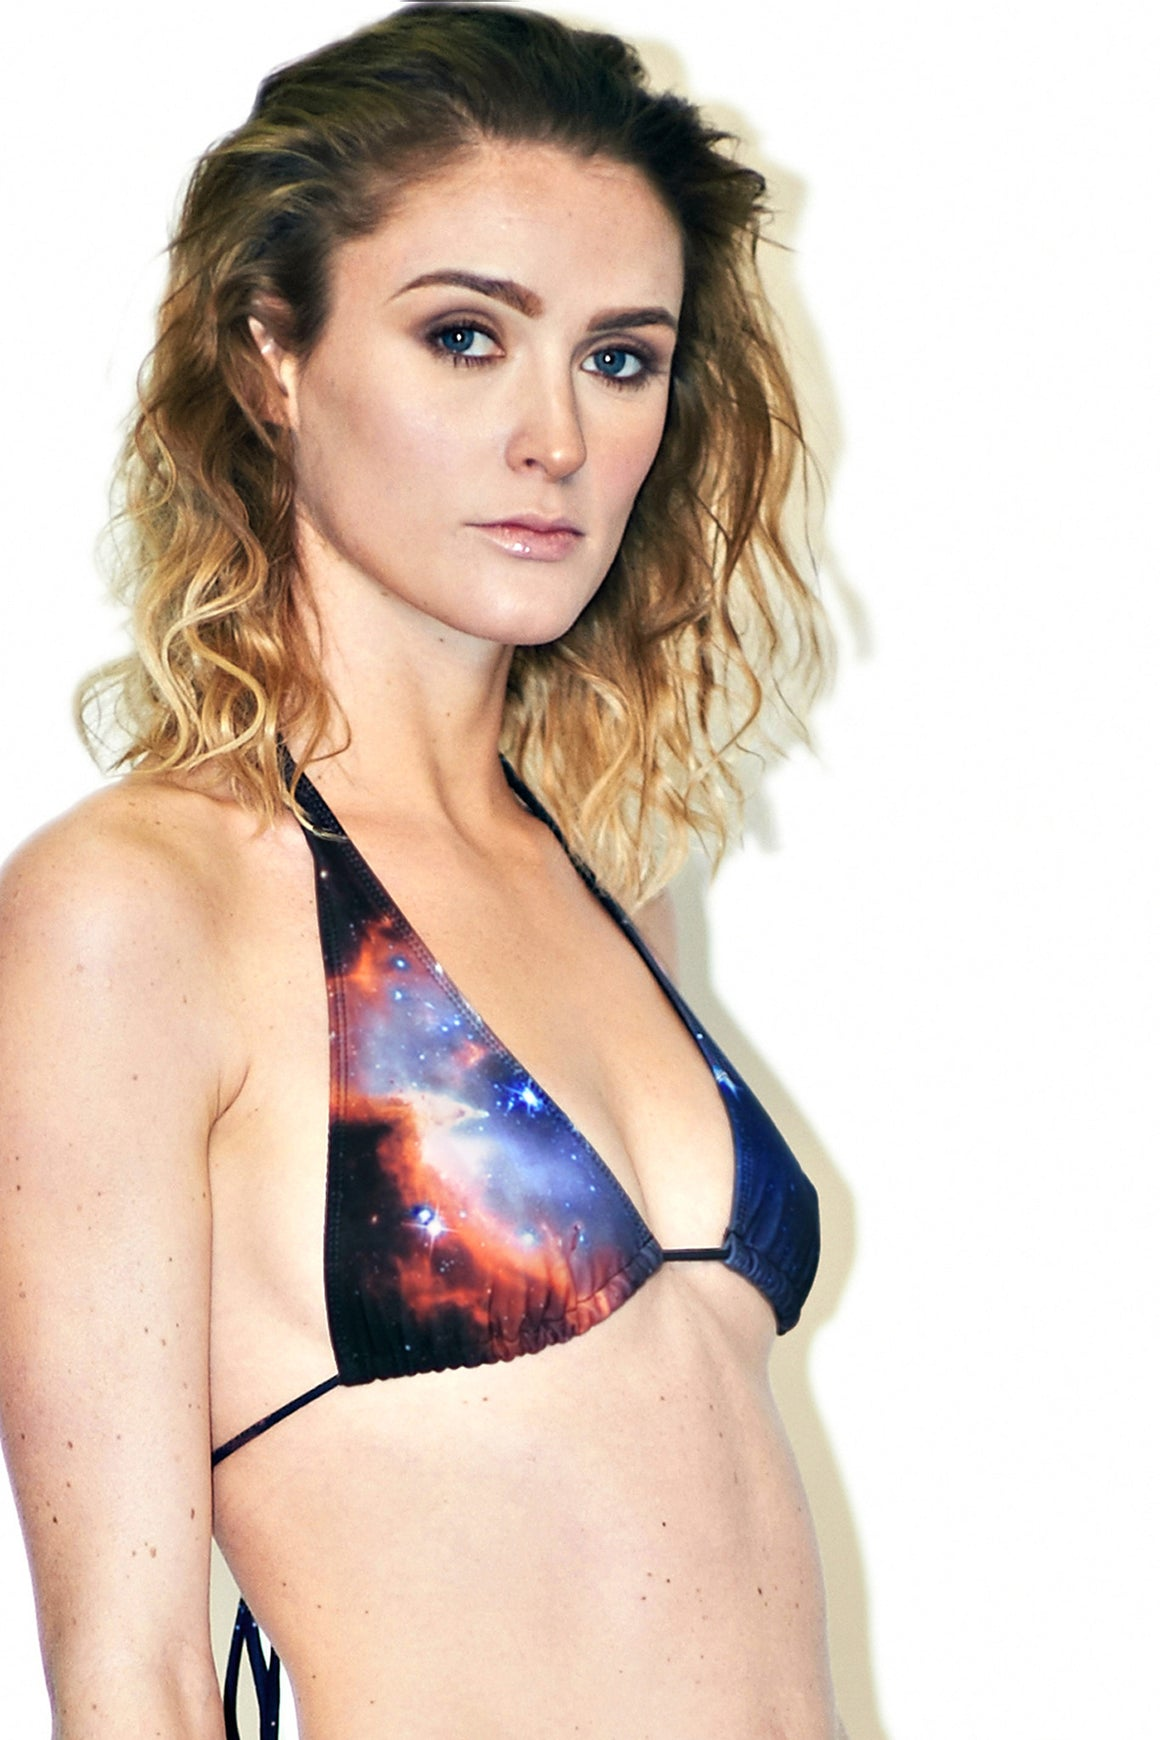 Sagan Galaxy Bikini, Galaxy Print Swimsuit, Galaxy Print Clothing, Shadowplaynyc